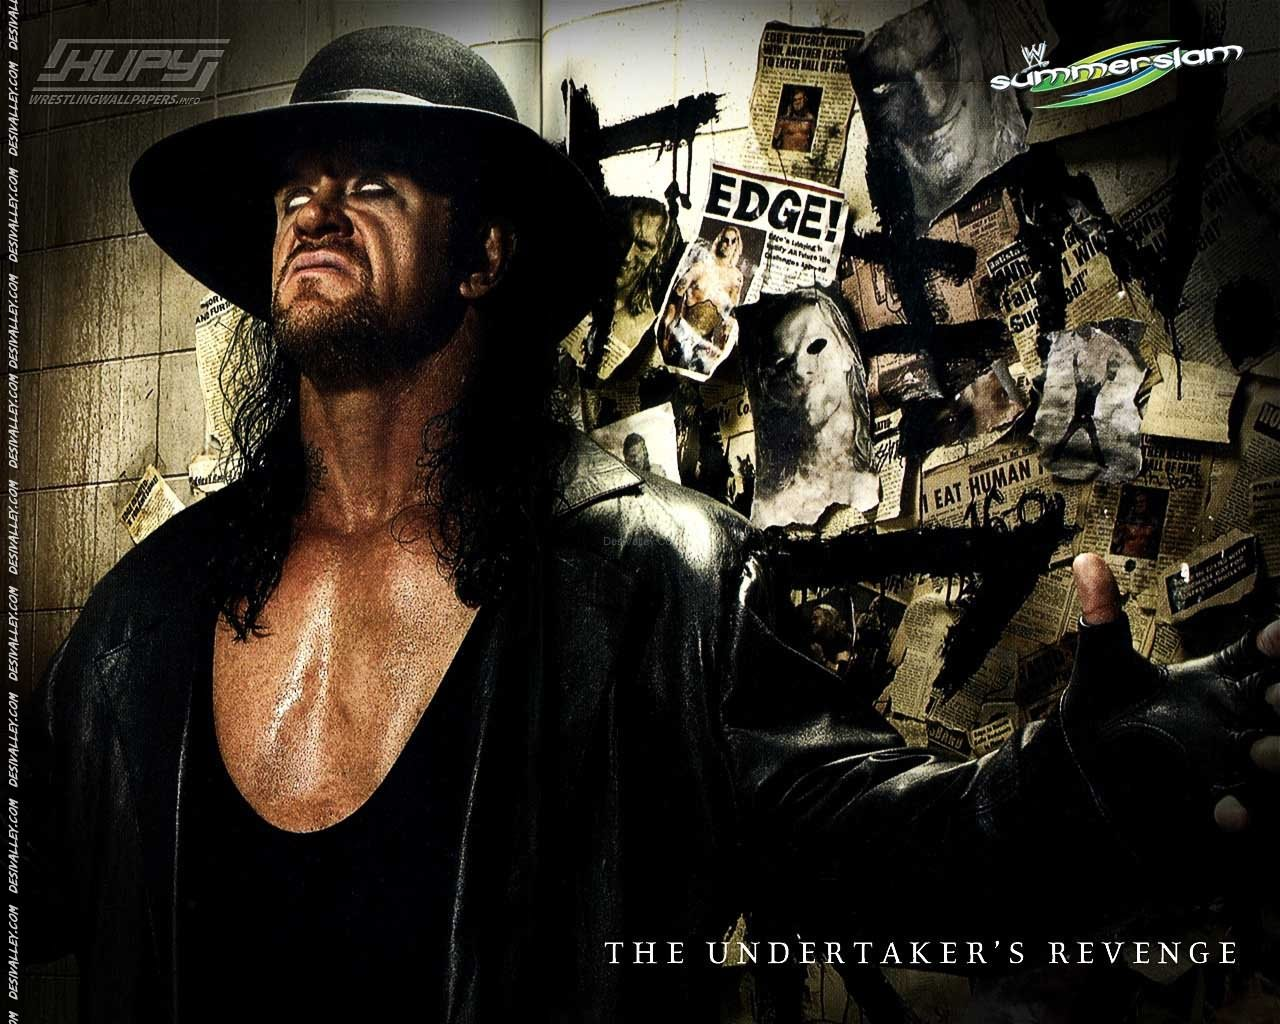 Undertaker Images HD Wallpaper And Background Photos